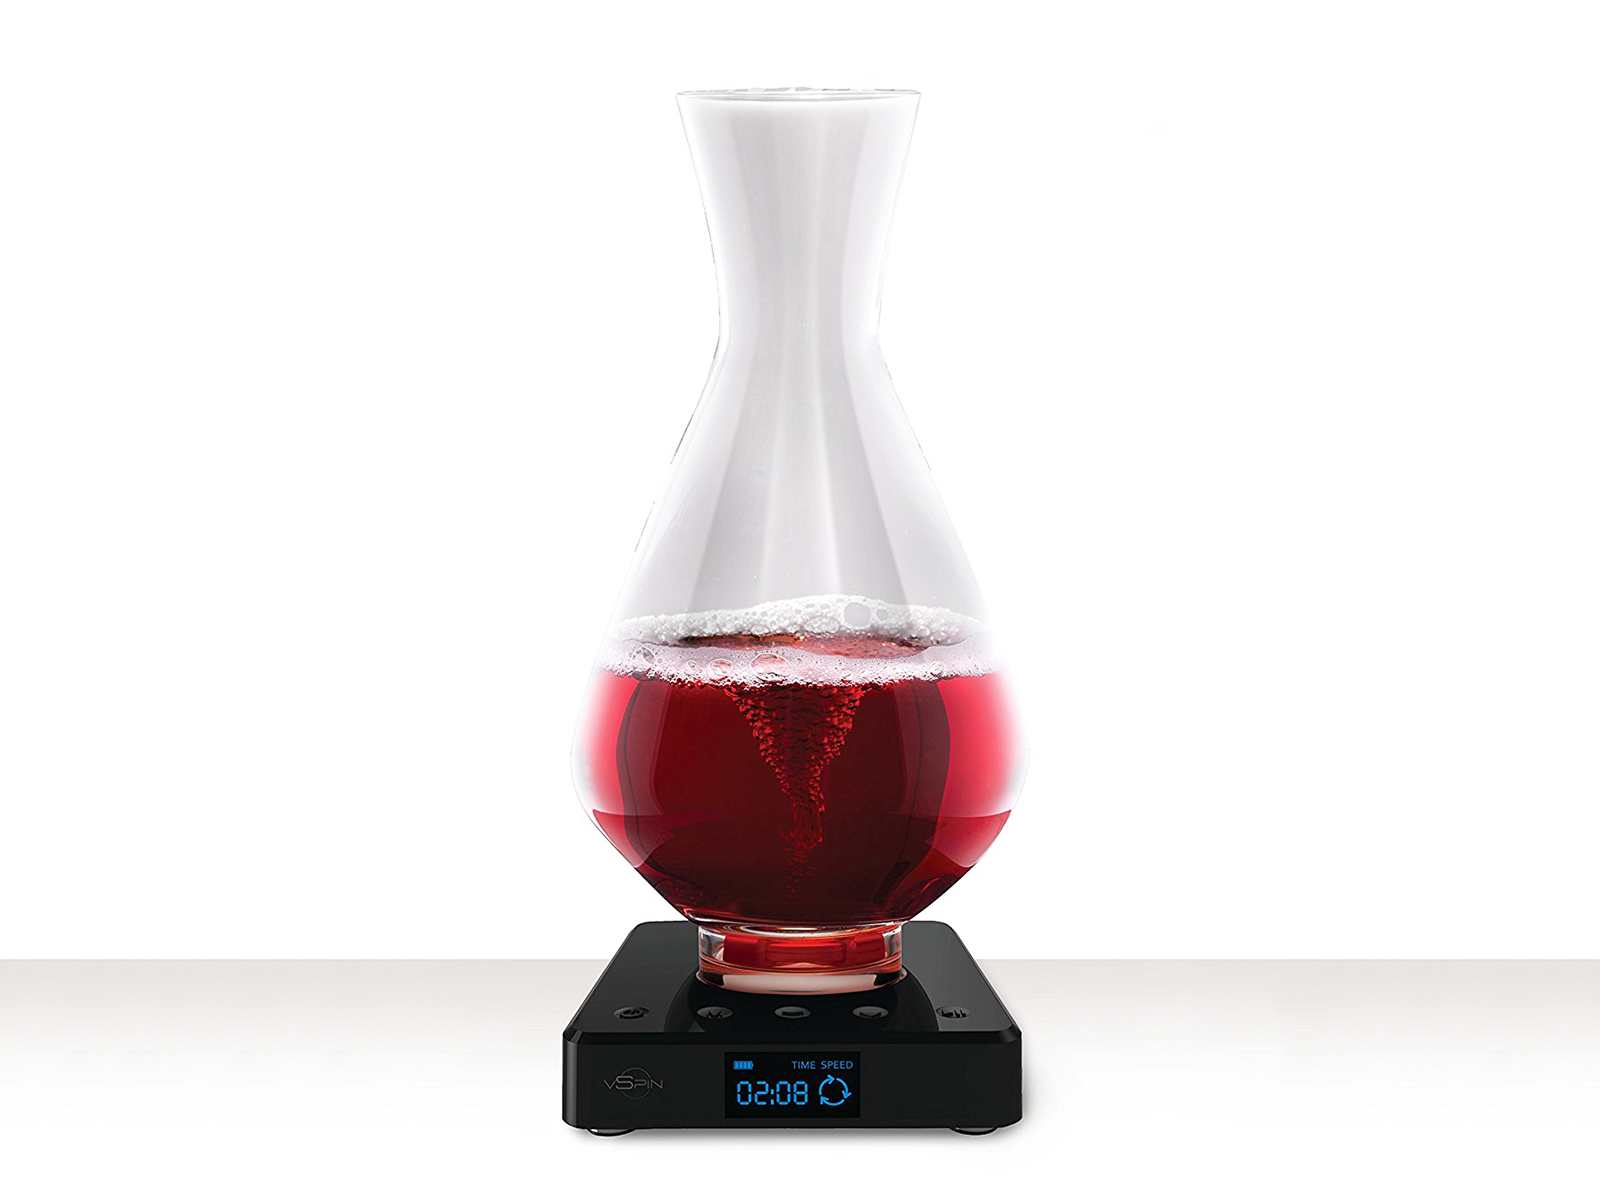 Self-Swirling Wine Decanter